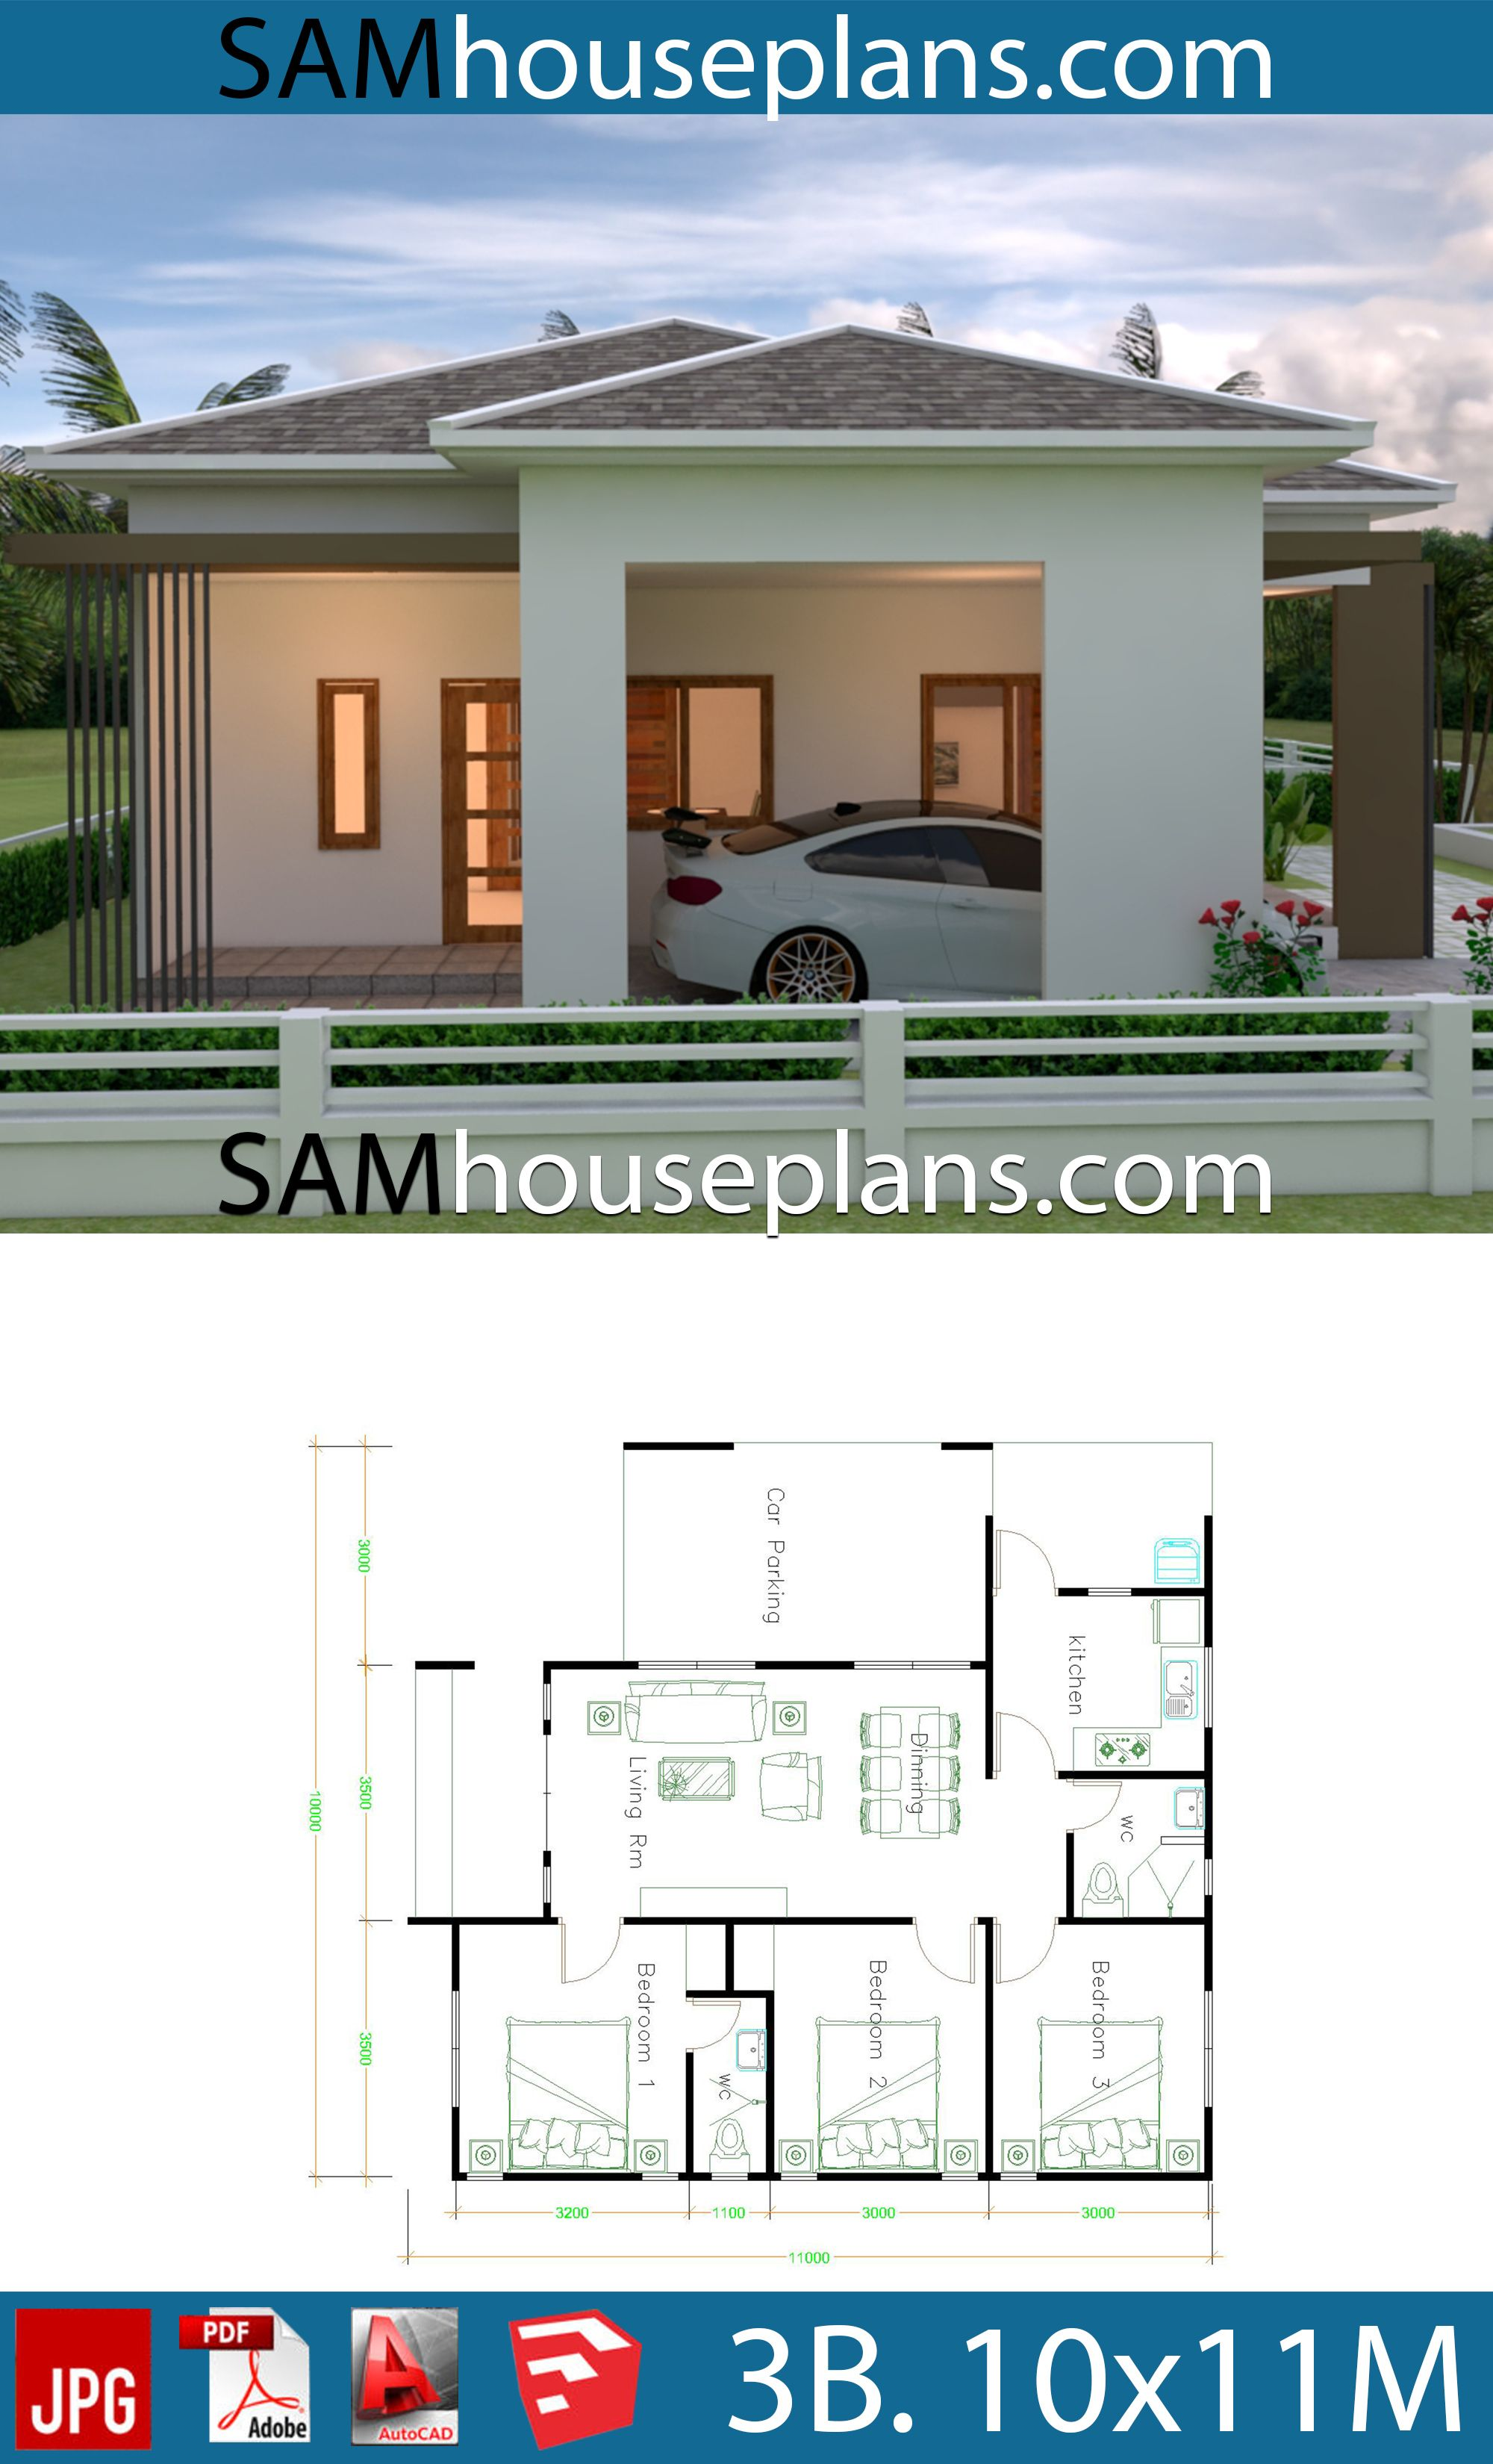 House Plans 10x11 With 3 Bedrooms Roof Tiles House Plans Free Downloads House Plans With Pictures Modern House Plans House Plans